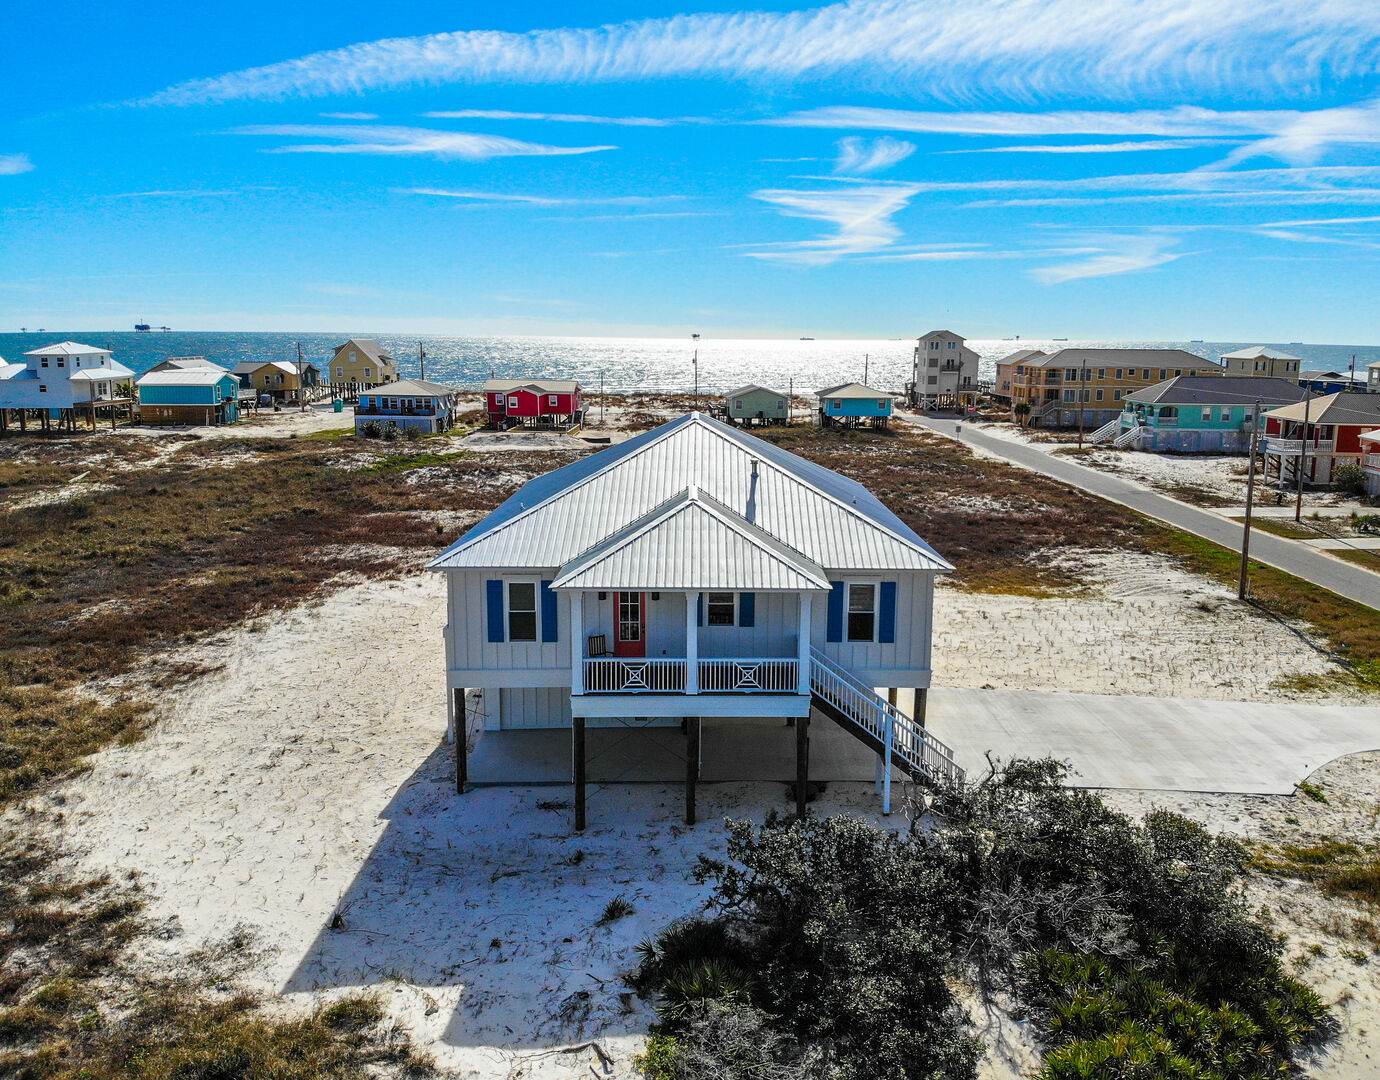 Gulf Shores cottage rental viewed from above